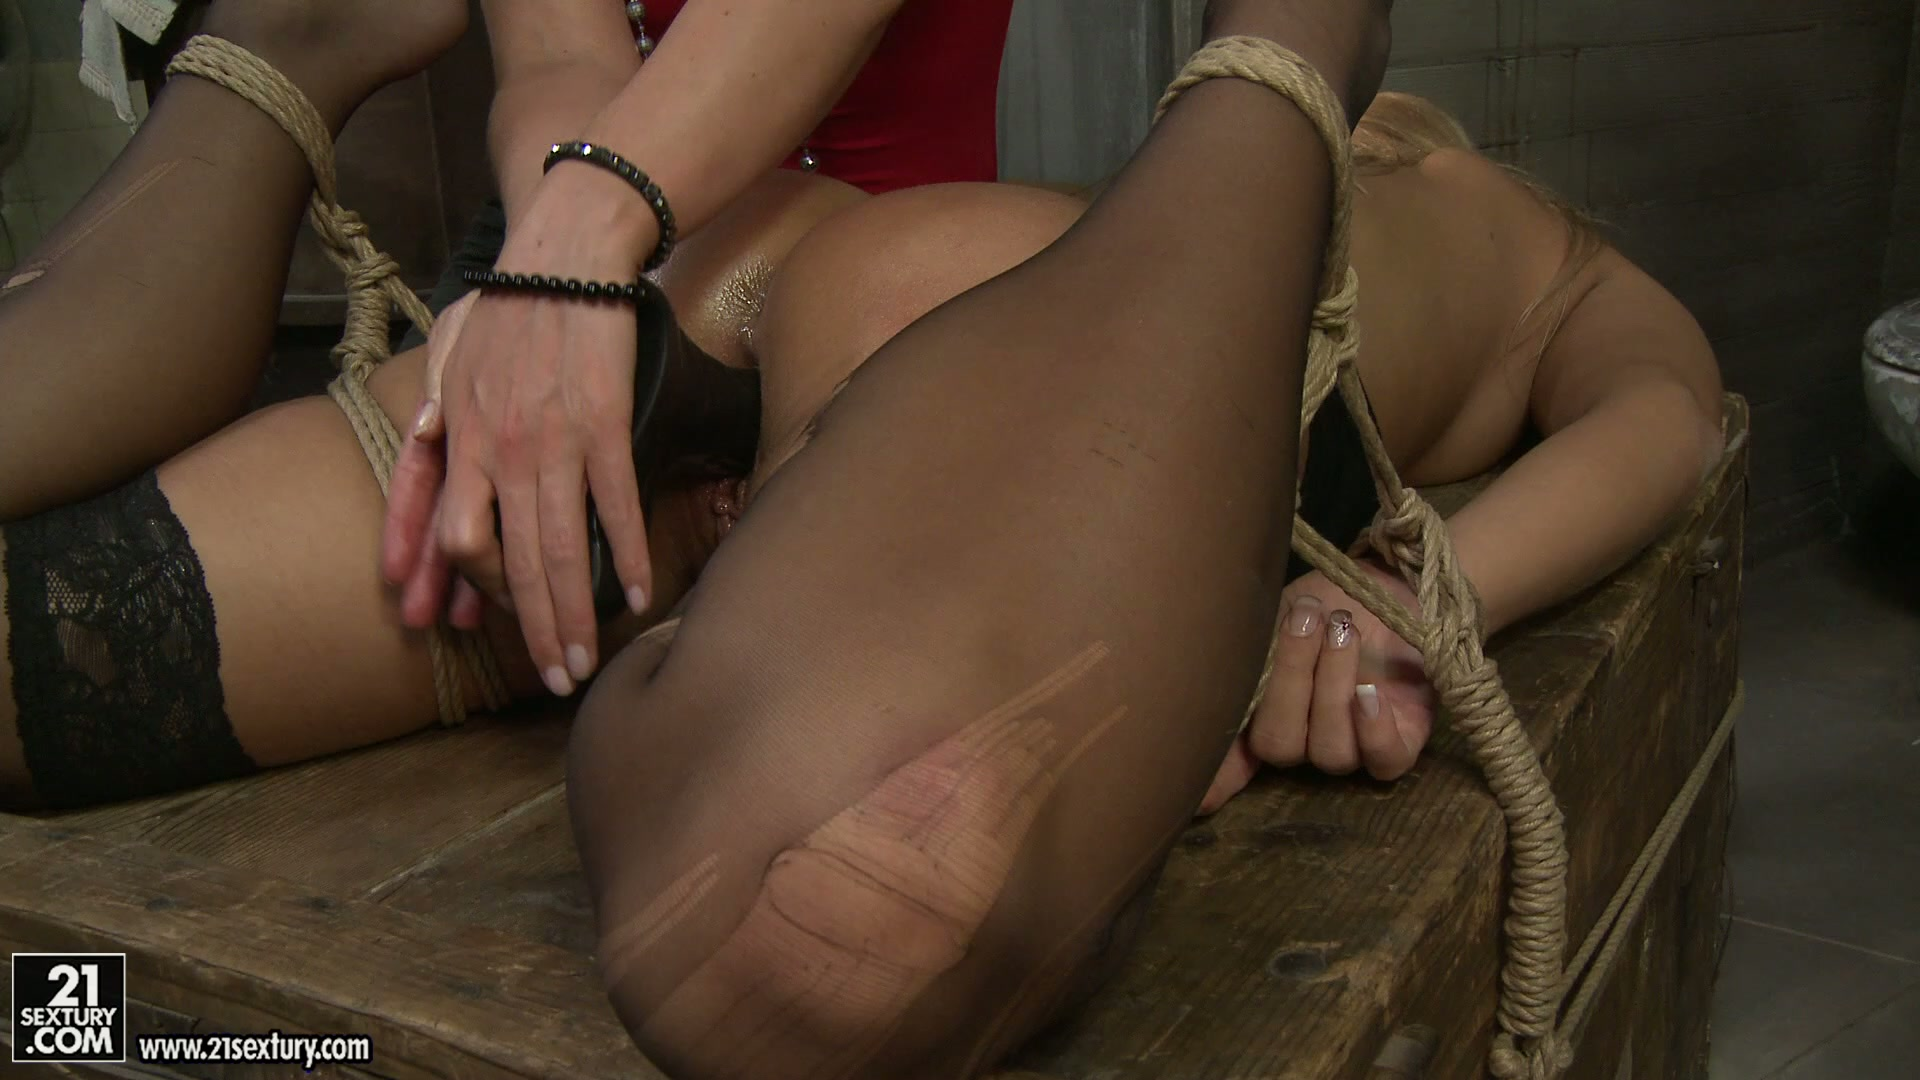 Dildo injection with lusty hoes Kathia Nobili and Linda Ray